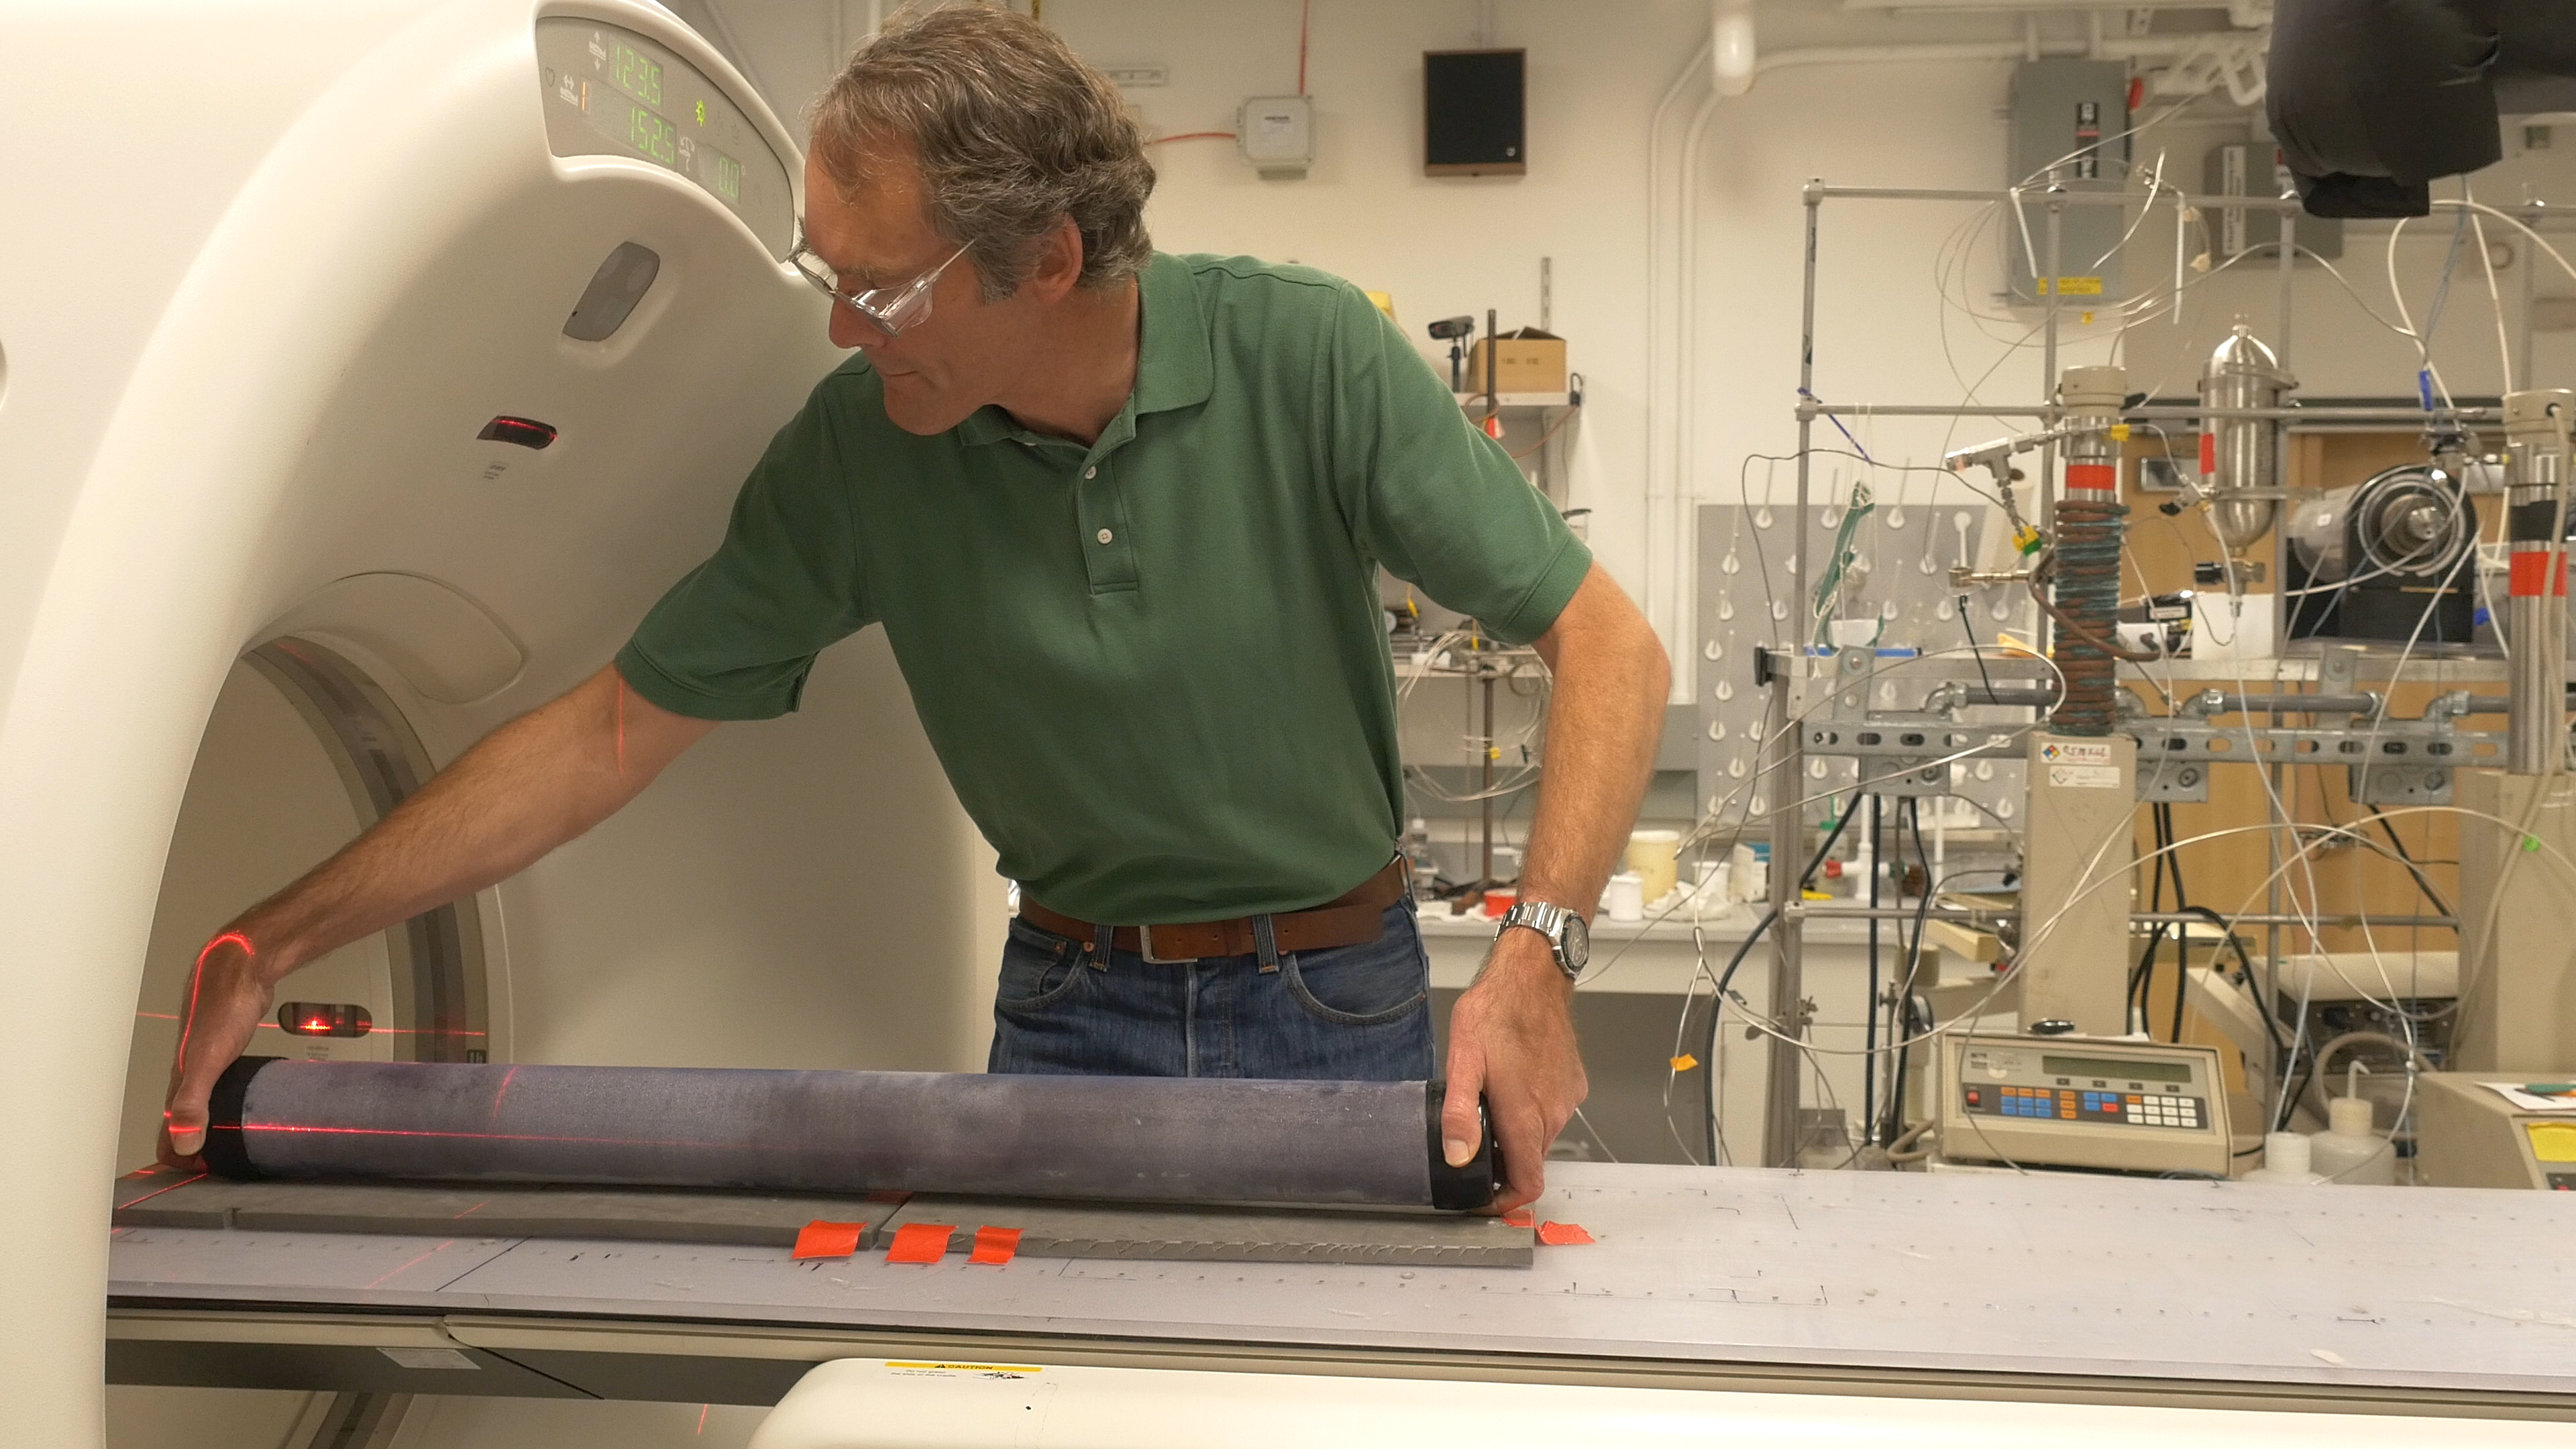 Tim Kneafsey loading a permafrost core onto a CT scanner at LBNL. Photo: Josh Cassidy/KQED